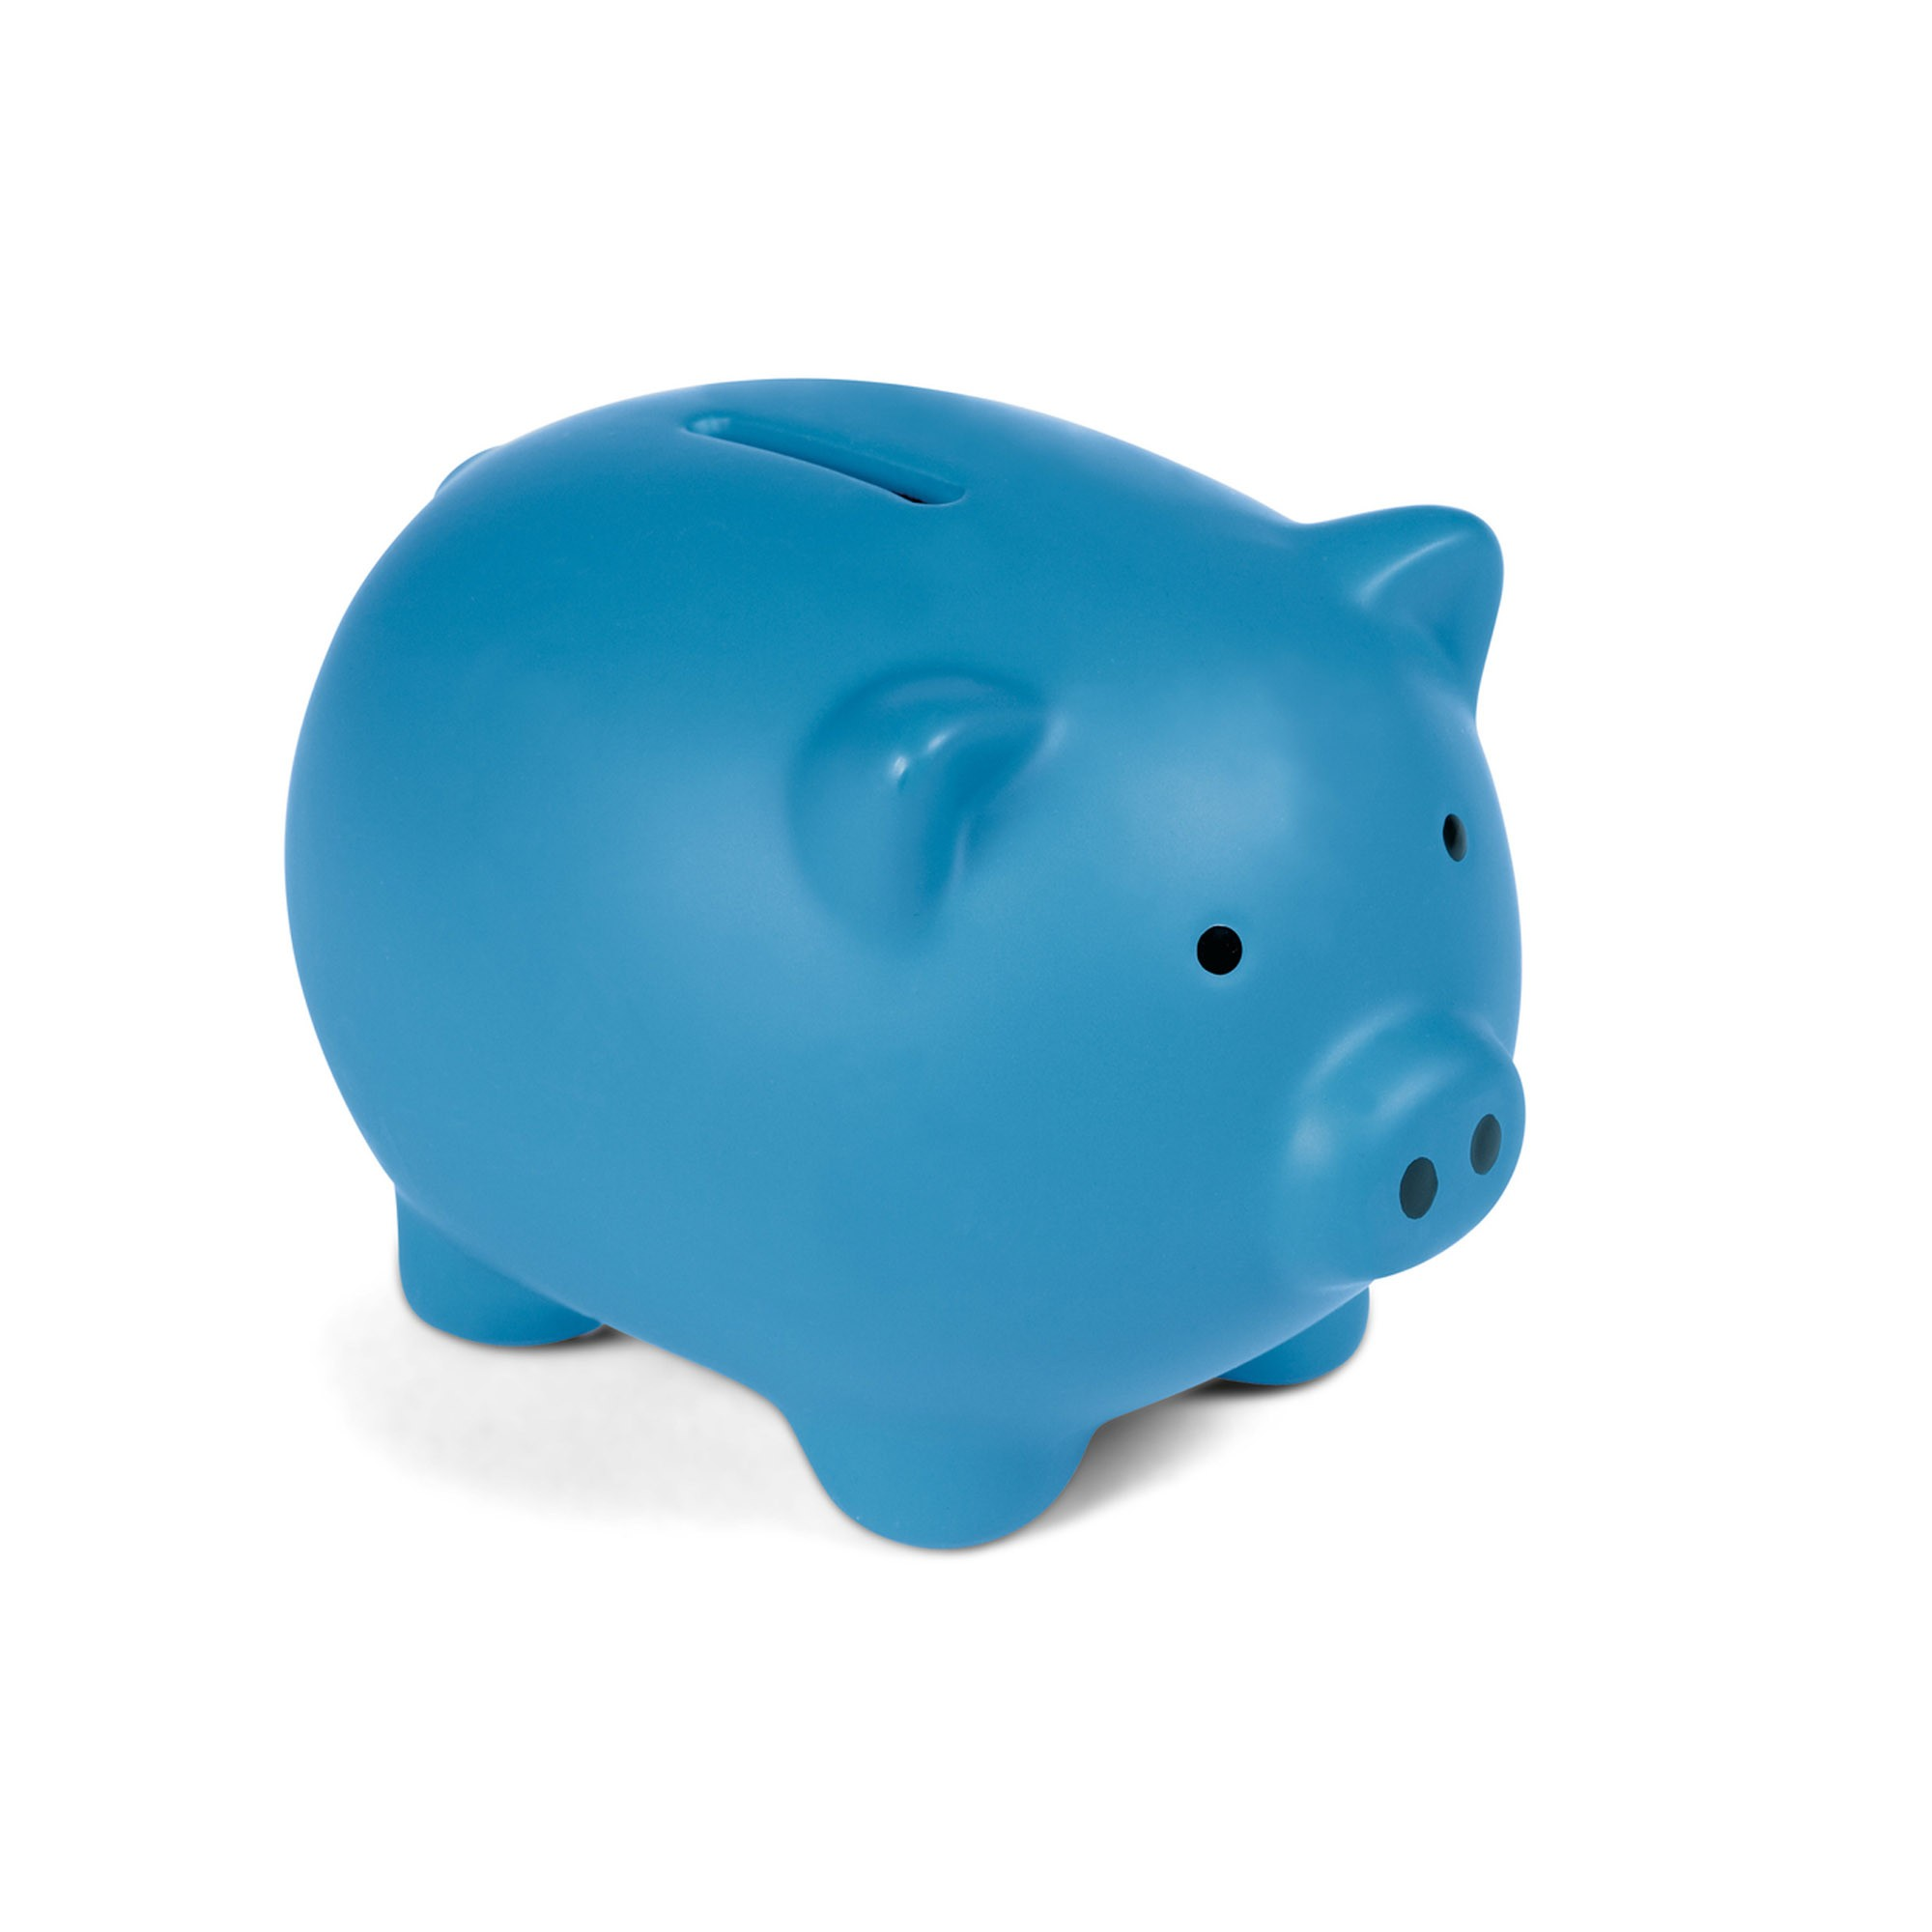 Blue piggy bank clipart svg free Blue Piggy Bank Clipart Related Keywords & Suggestions - Blue ... svg free